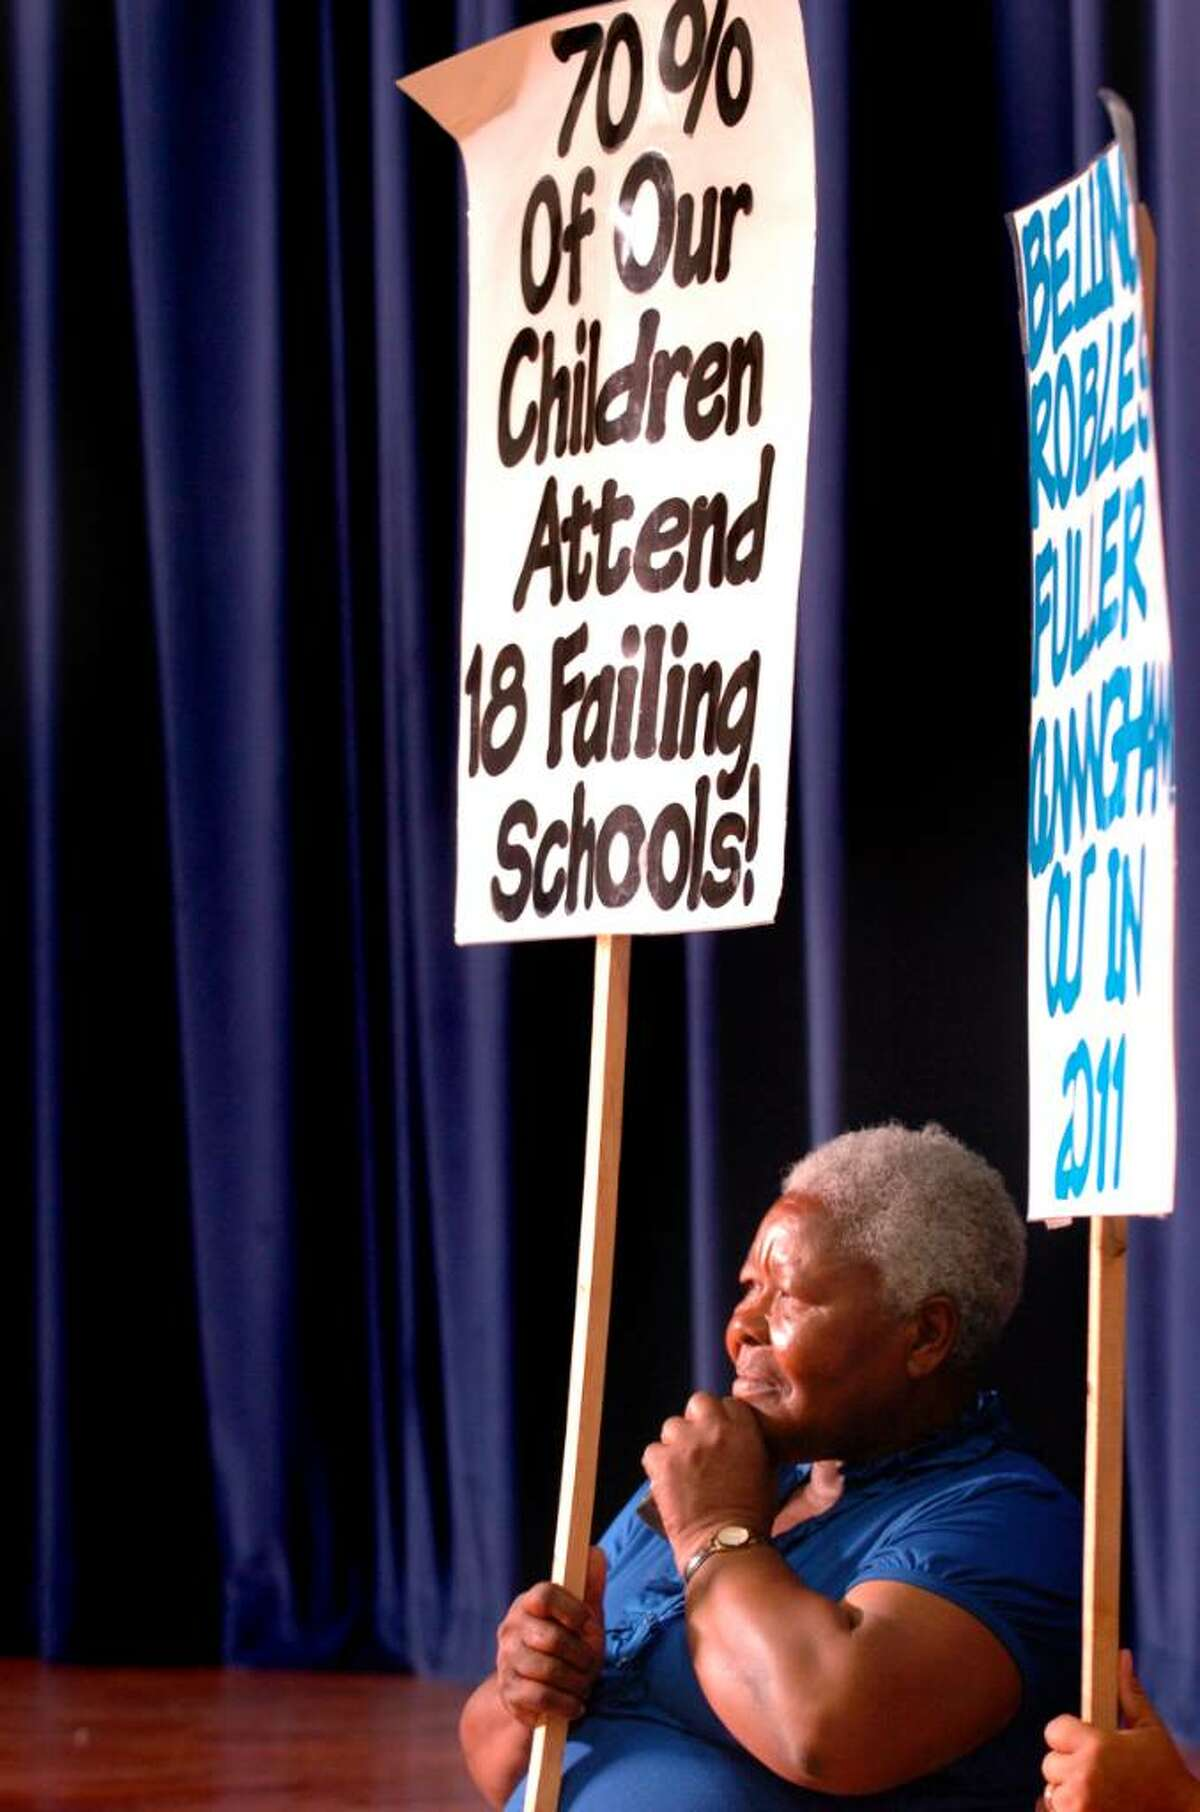 Community member Emeline Bravo-Blackwood holds a sign as she listens to Superintendent of Schools John Ramos answer questions from parents Tuesday June 8, 2010 during a meeting to discuss plans to close Roosevelt School as part of a budget cutting measure.